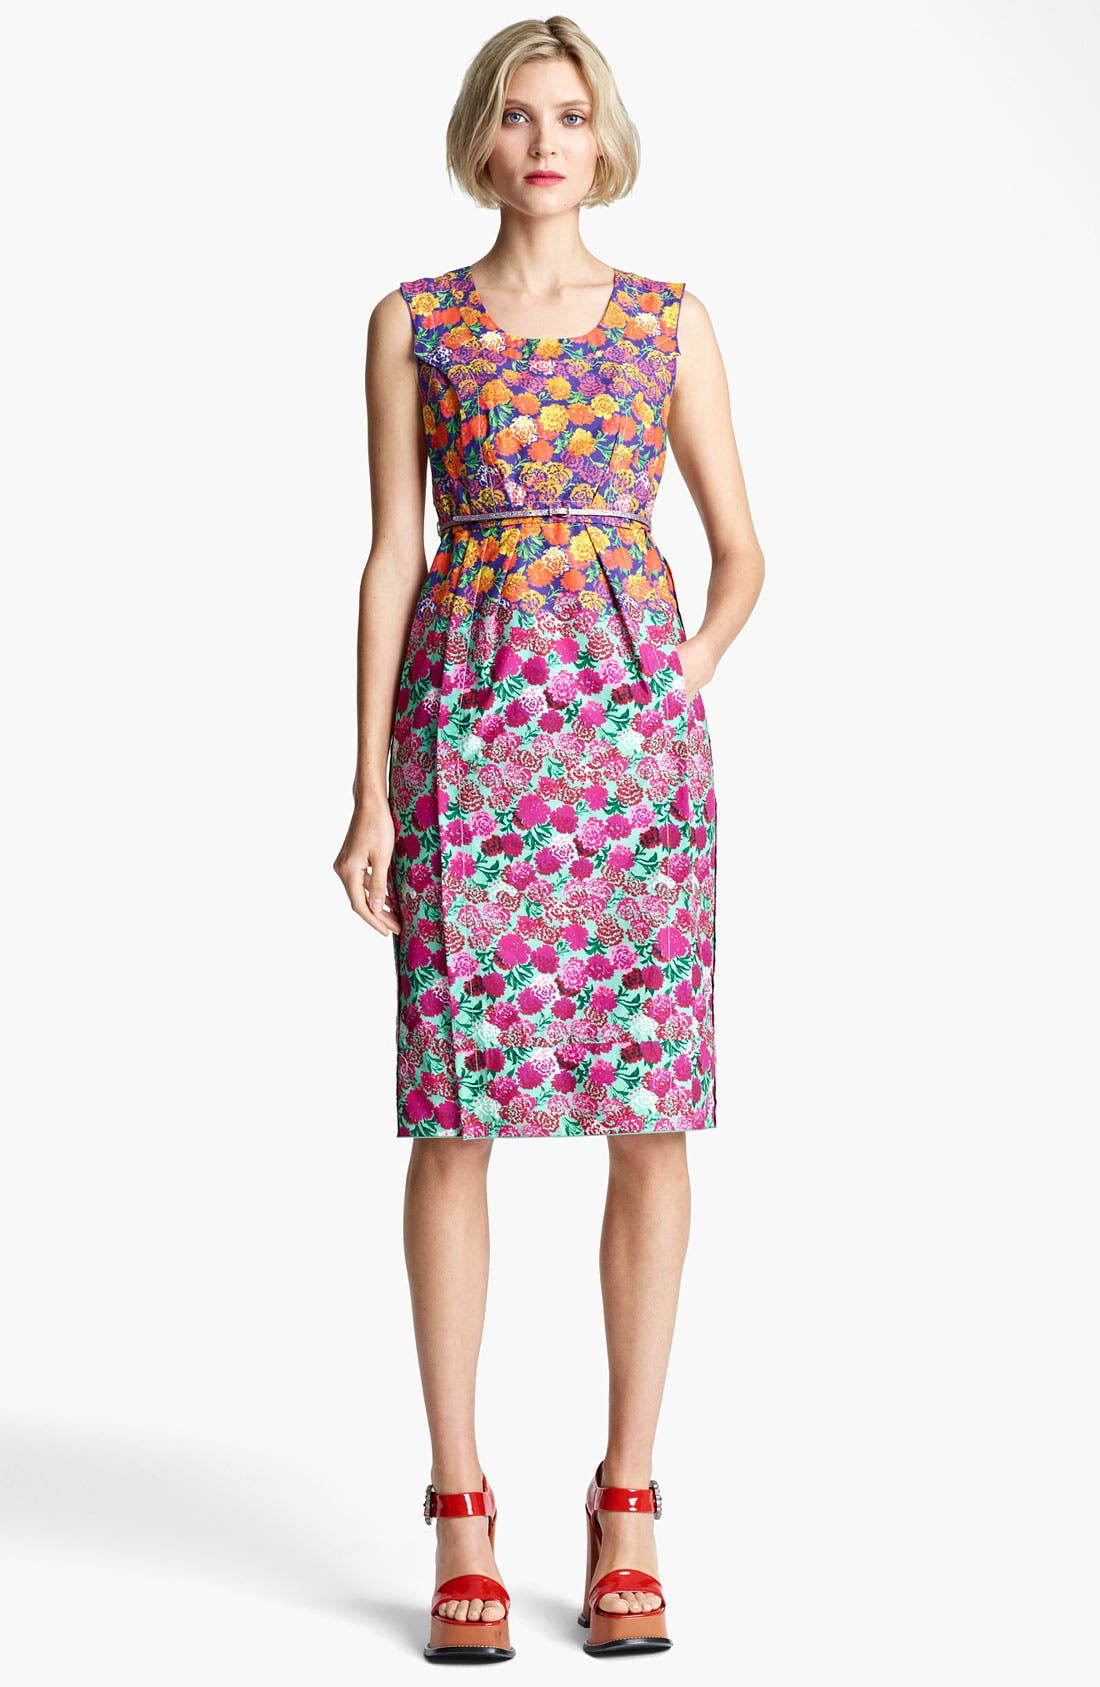 Alternate Image 1 Selected - MARC JACOBS Bicolor Flower Print Dress